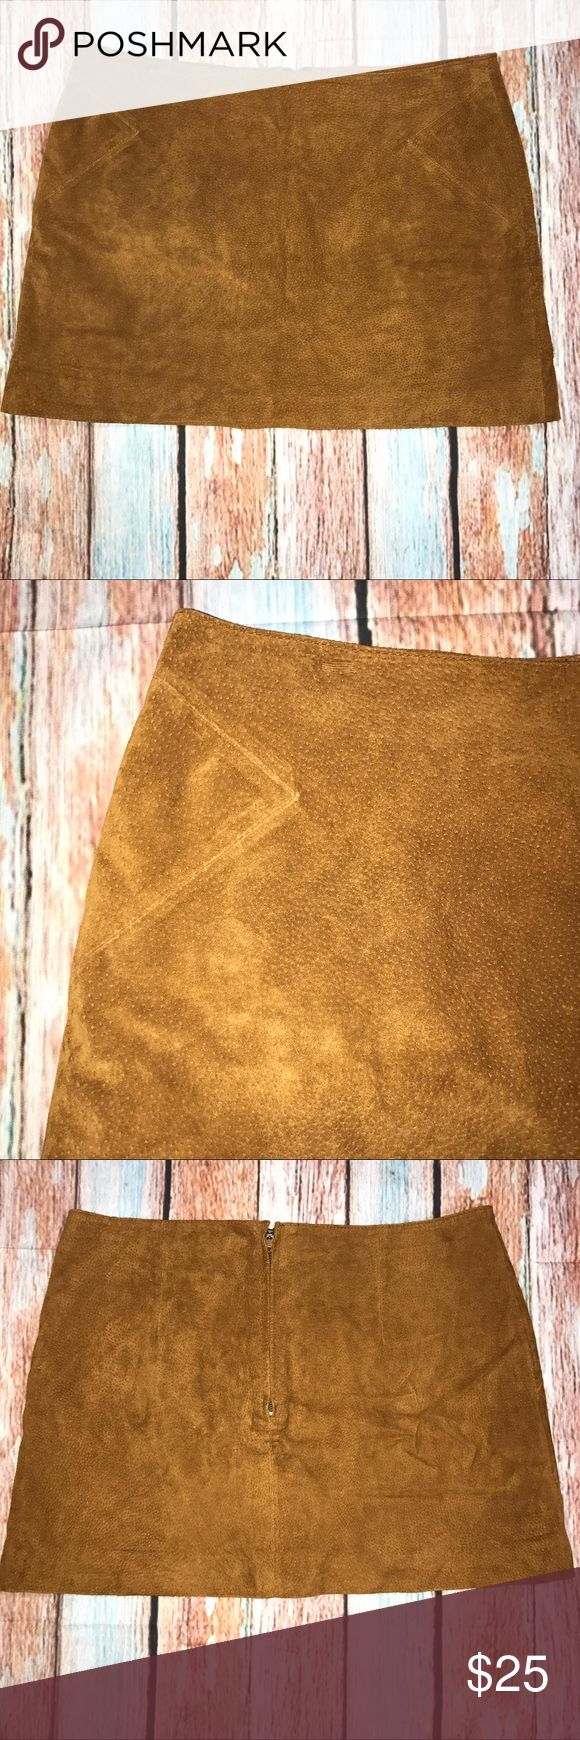 """Forever 21 Brown Suede Micro Mini Skirt Festival Forever 21 Women's Brown Suede Mini Skirt Size L Festival Short Sexy Fully lined 100% pigskin leather waist lying flat - 17"""" length - 14.5"""" Forever 21 Skirts Mini"""